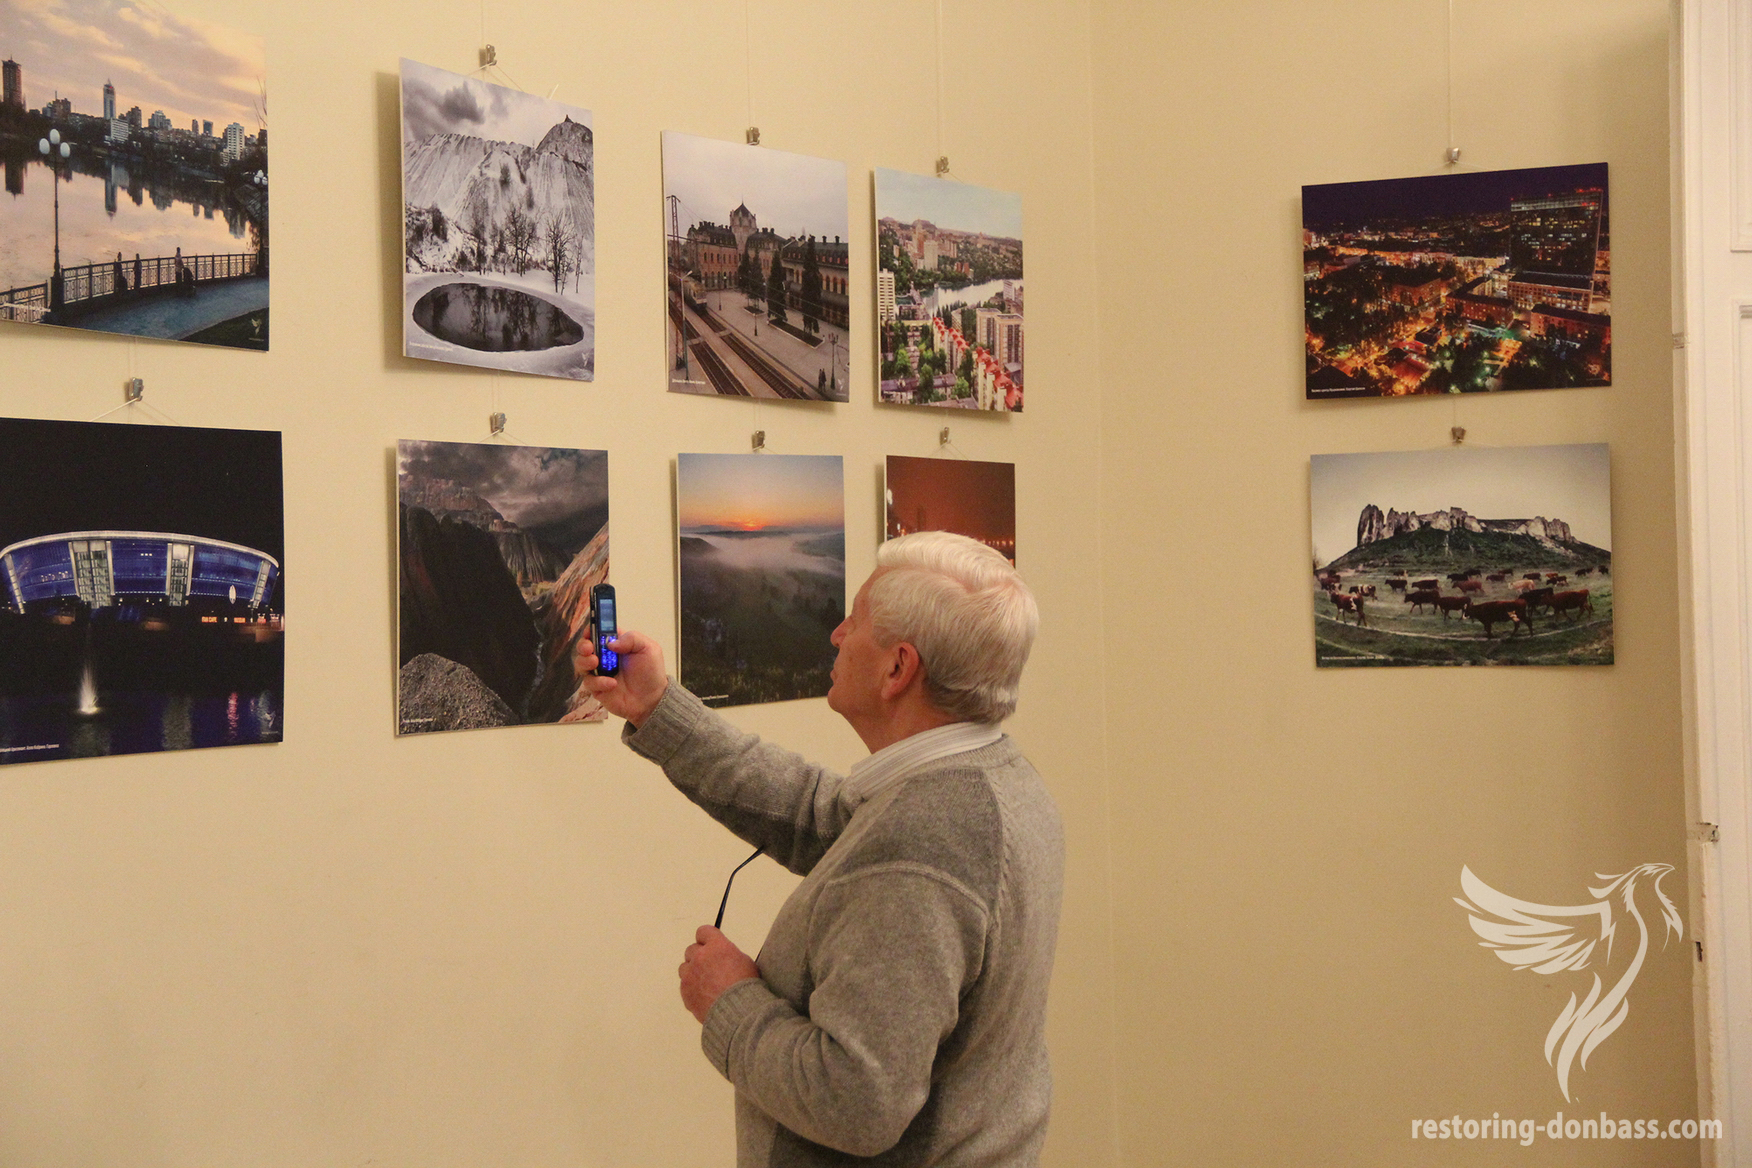 Exhibition of the photo contest works